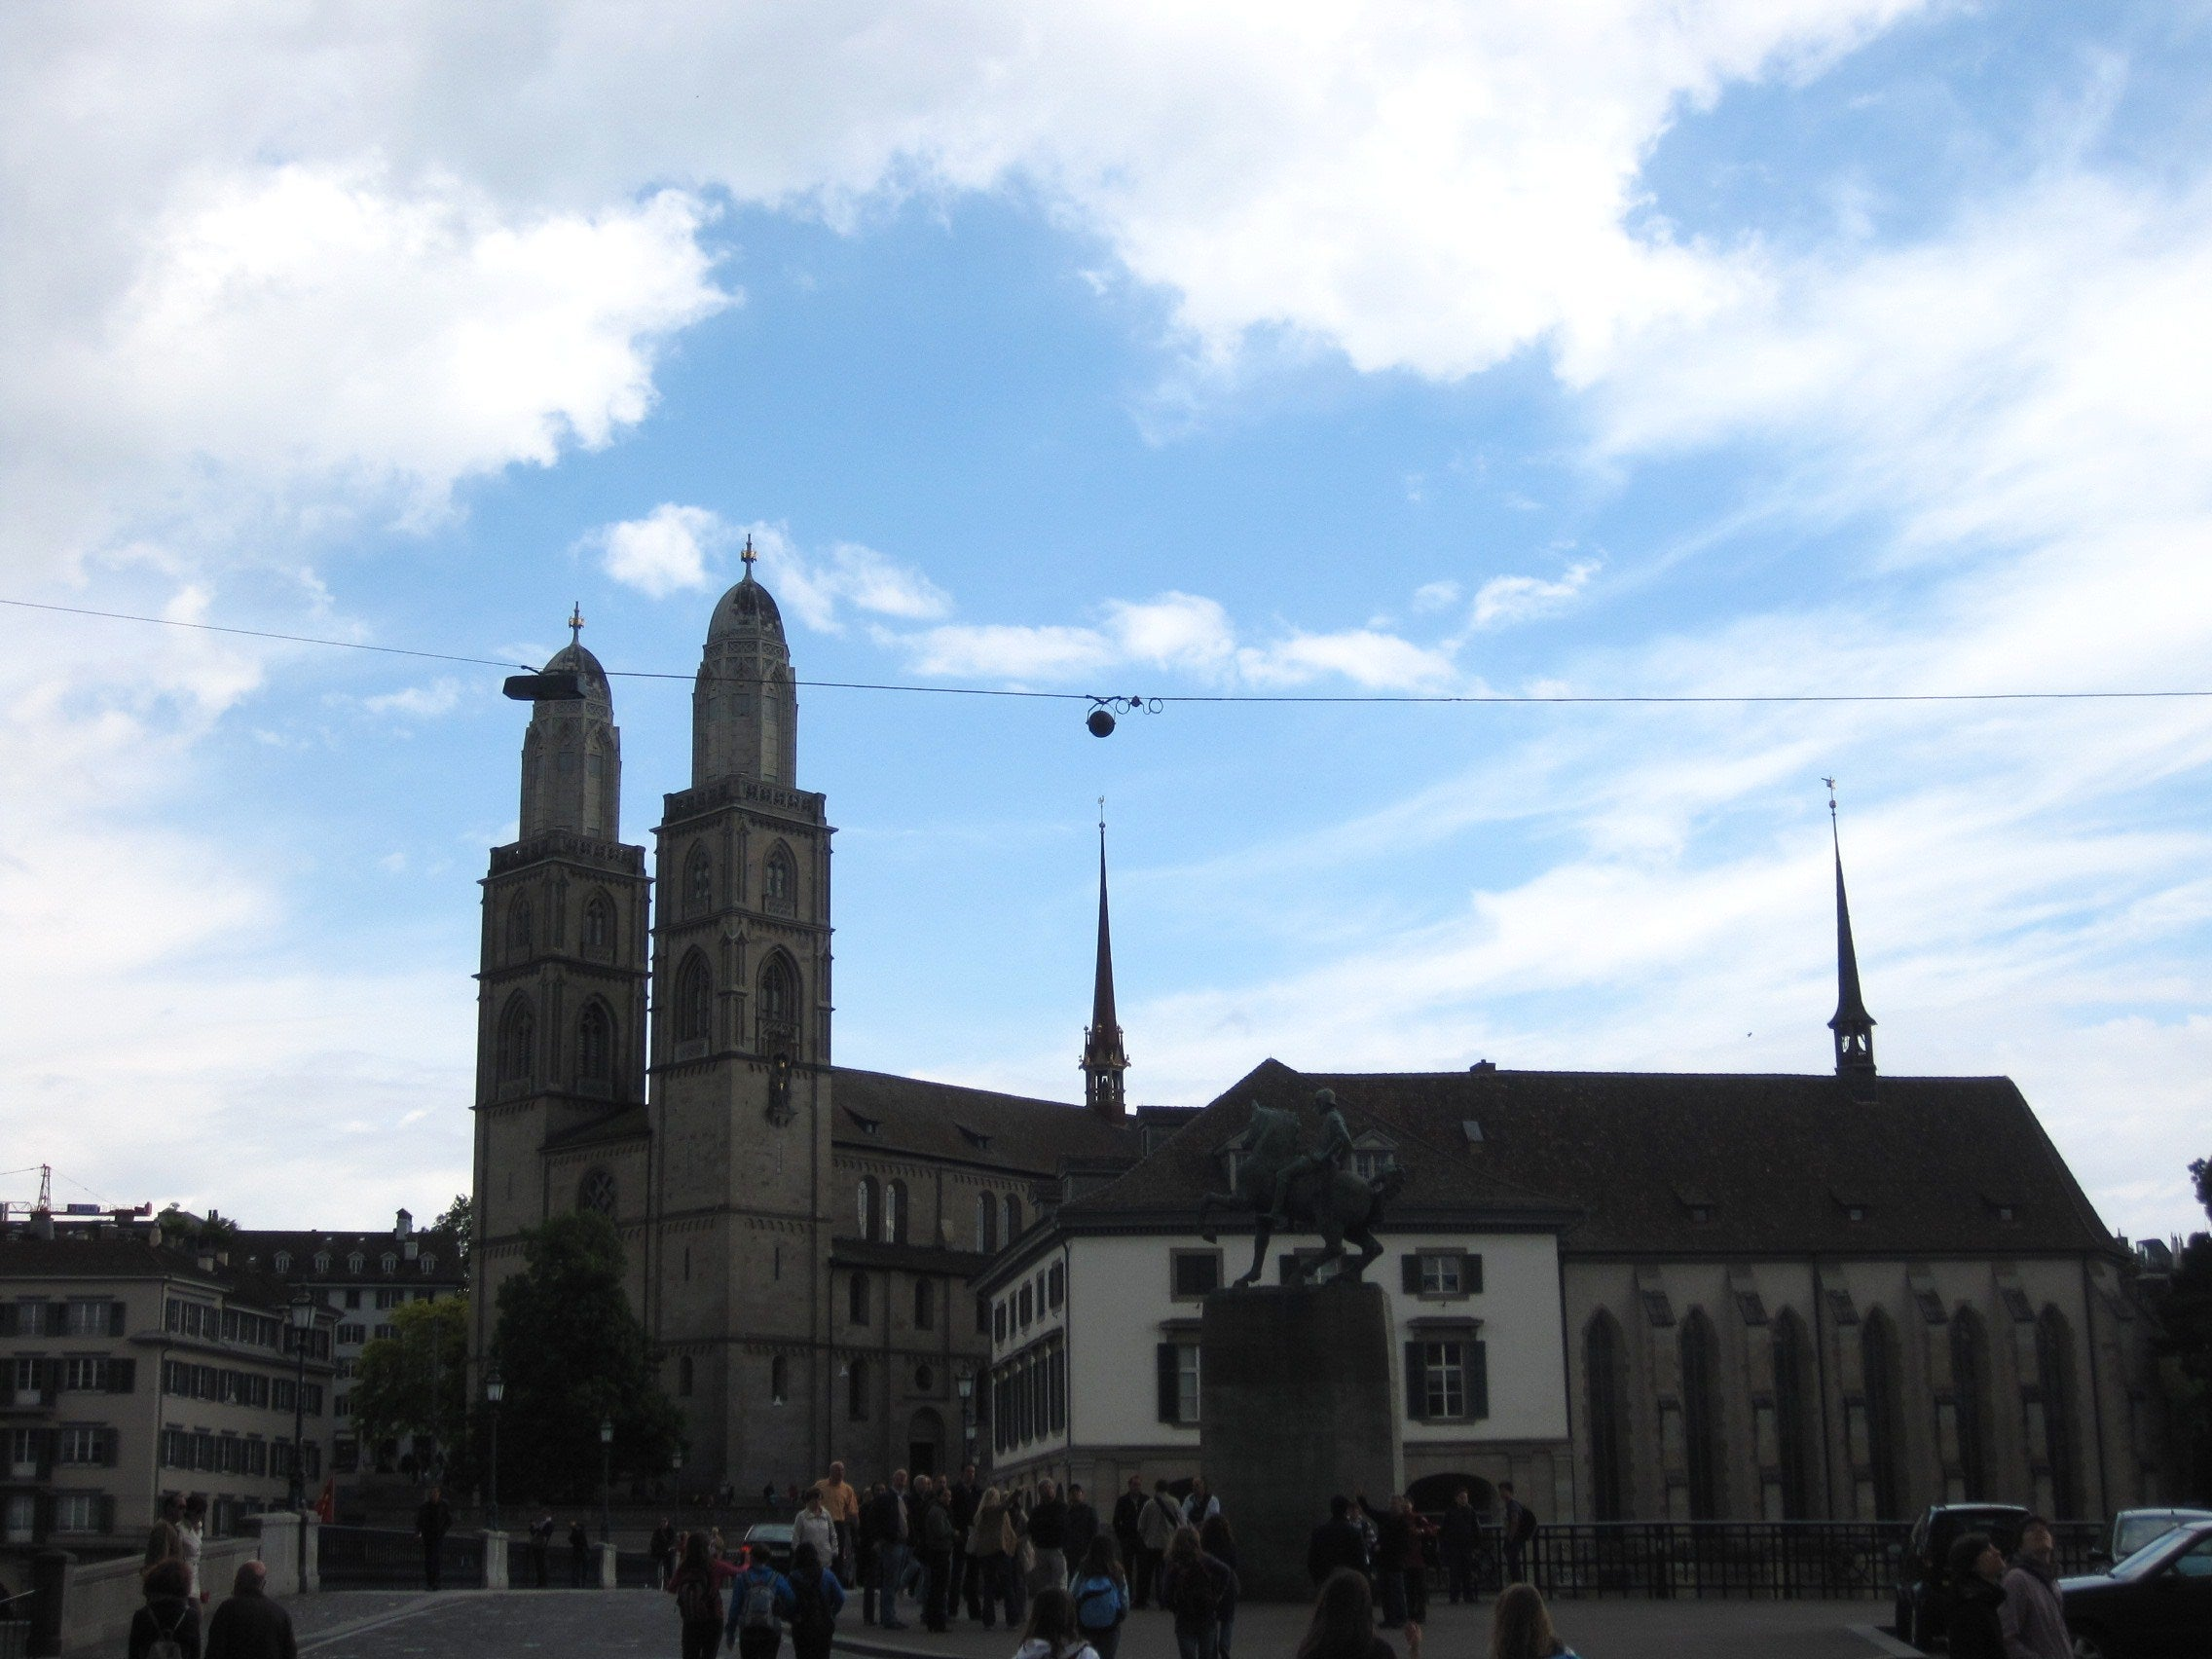 Skyline en Grossmünster